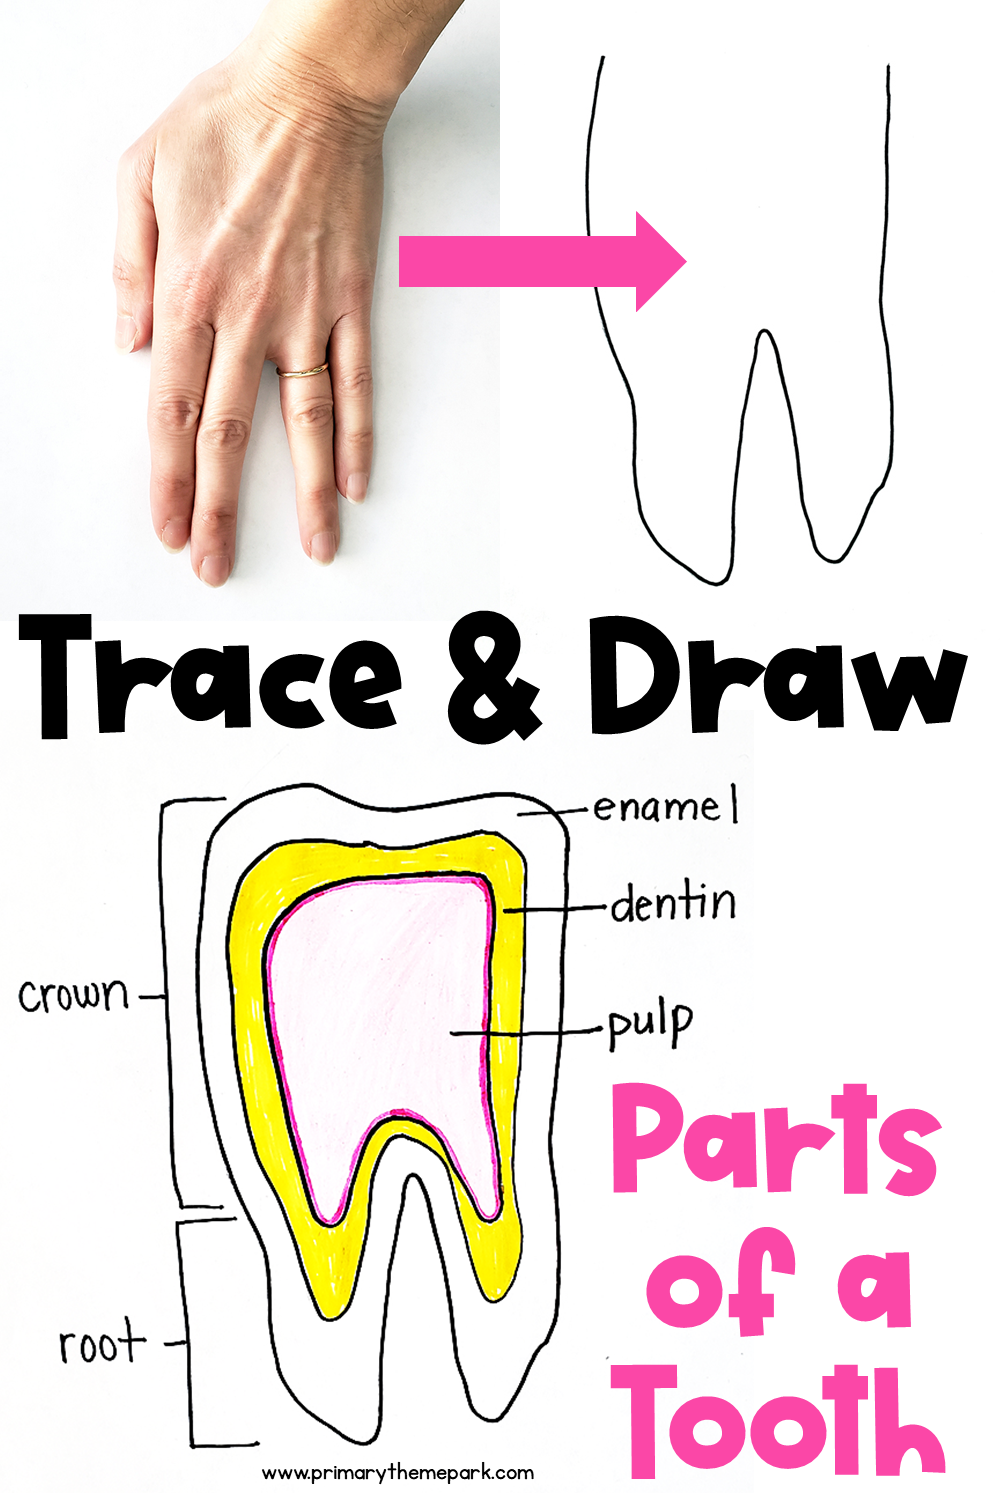 How to Draw a Parts of a Tooth Diagram for Kids. It's as easy as tracing your hand!